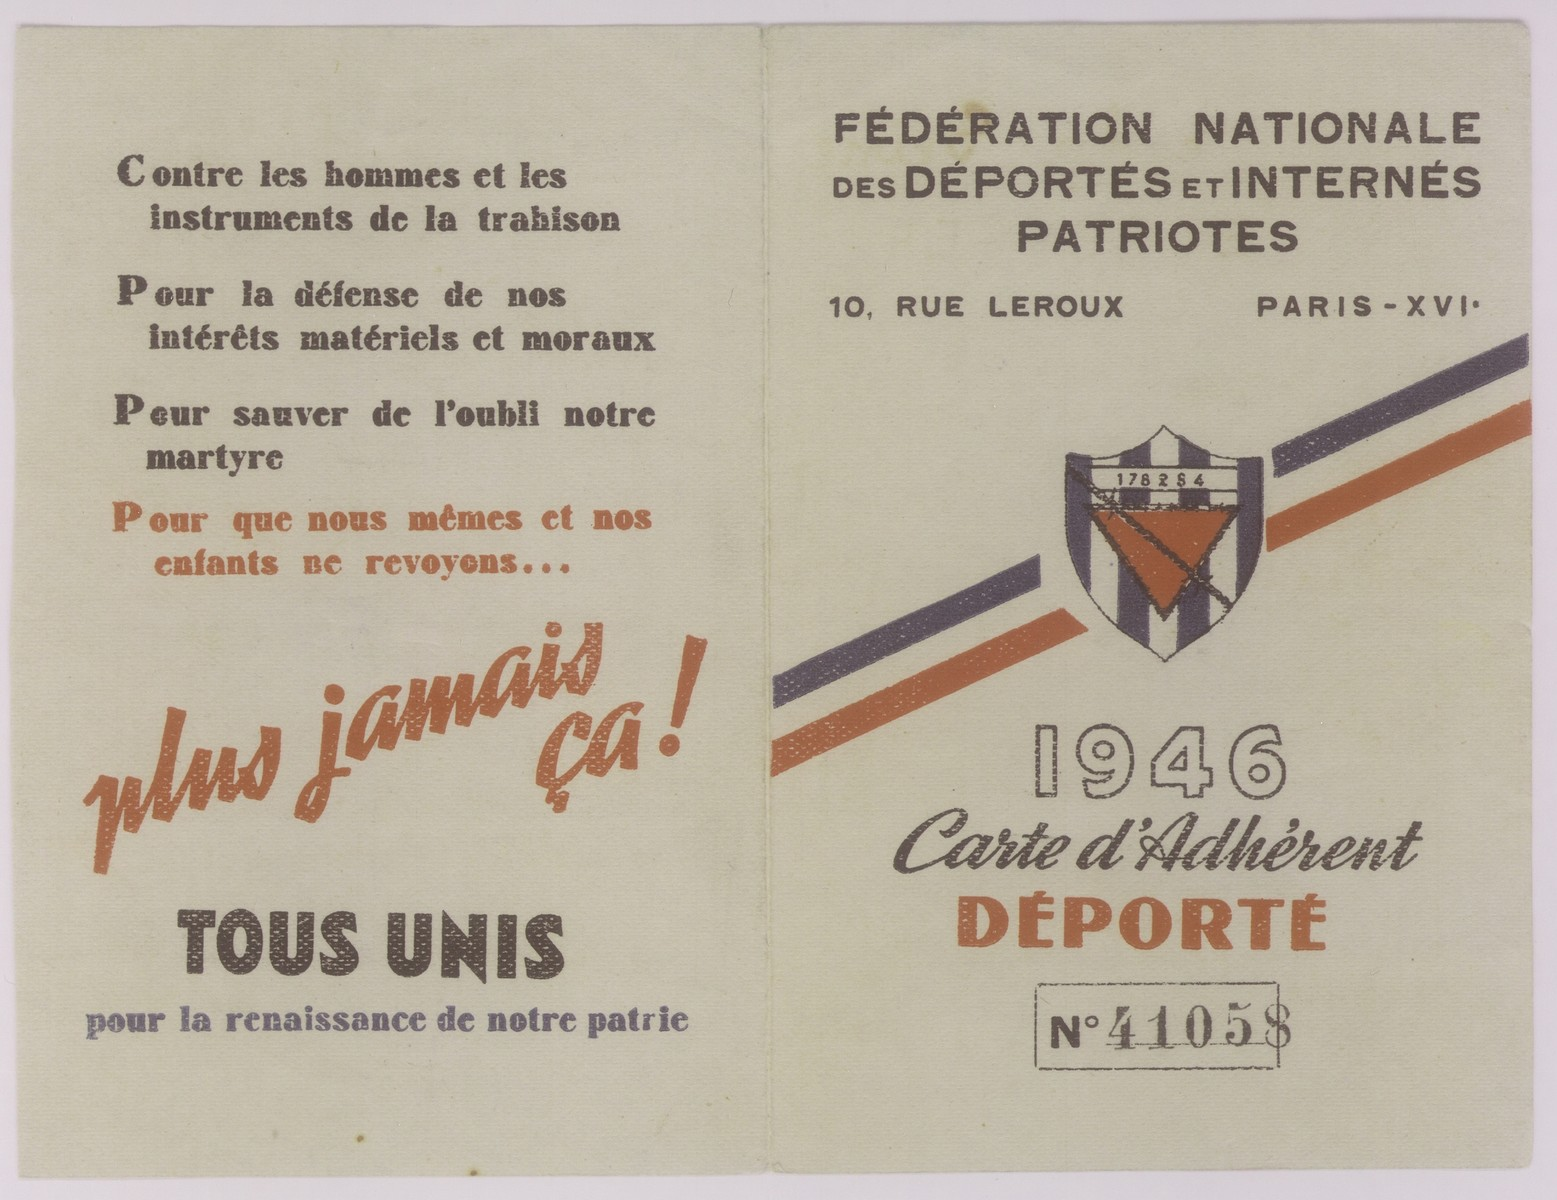 Membership card issued to Werner Neuberger by the National Federation of Deported and Interned Patriots in which it is recorded that  Werner Neuberger was deported to Aurigny on April 1, 1944.